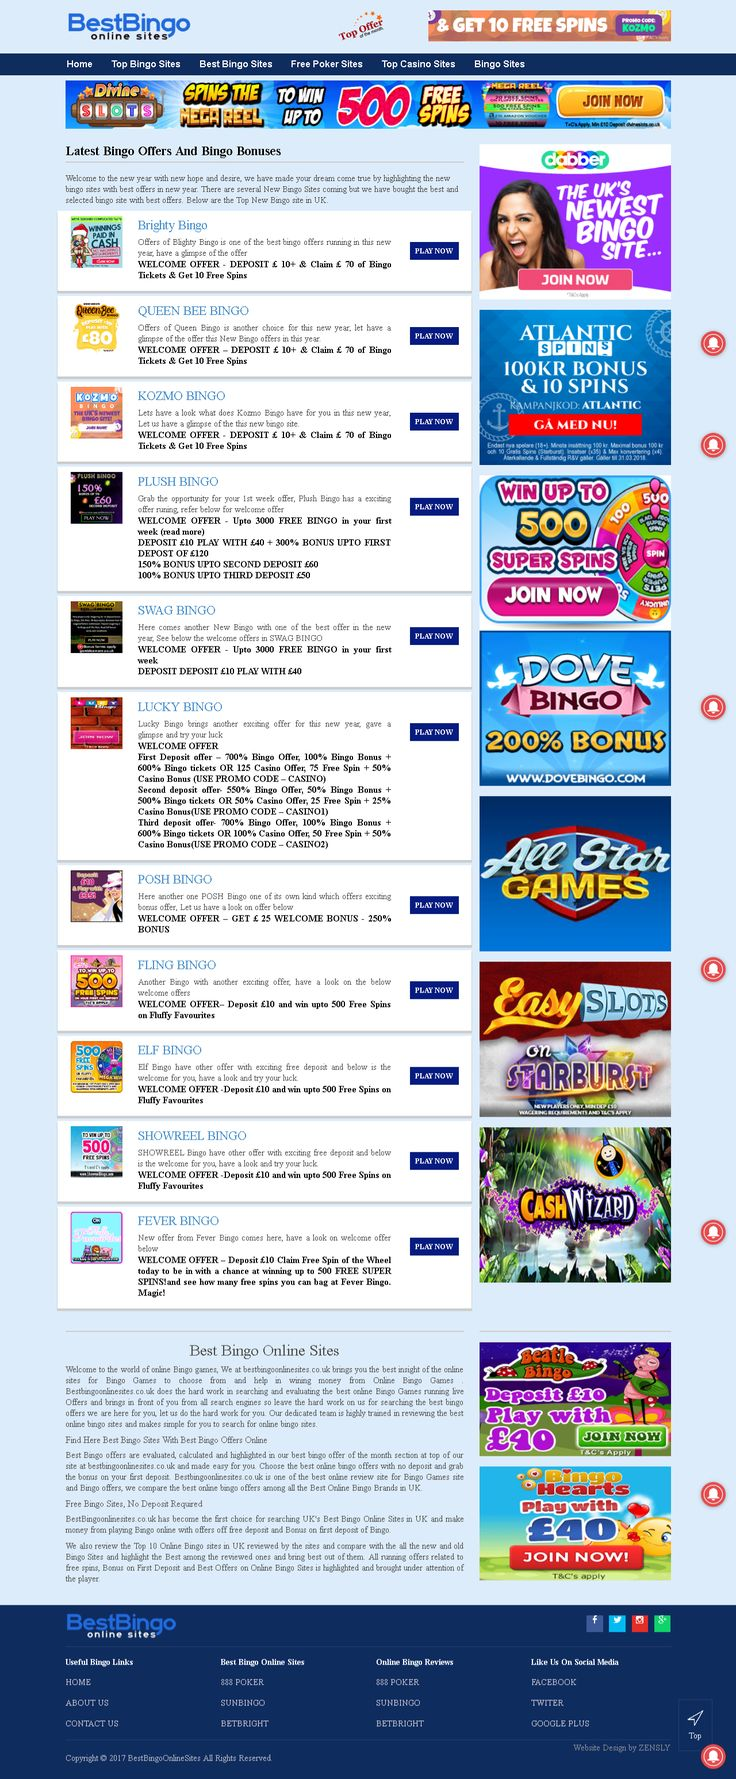 #bestbingoonlinesites #bestonlinebingosites #topbingosites #bestbingogamesonline #newbingooffres Welcome to Best Bingo Online Sites. We've done the hard work for you and gathered every Best online bingo sites we could get our hands on! Our unique comparison site allows you to compare: new bingo sites, free bingo sites at bestbingoonlinesites.co.uk.